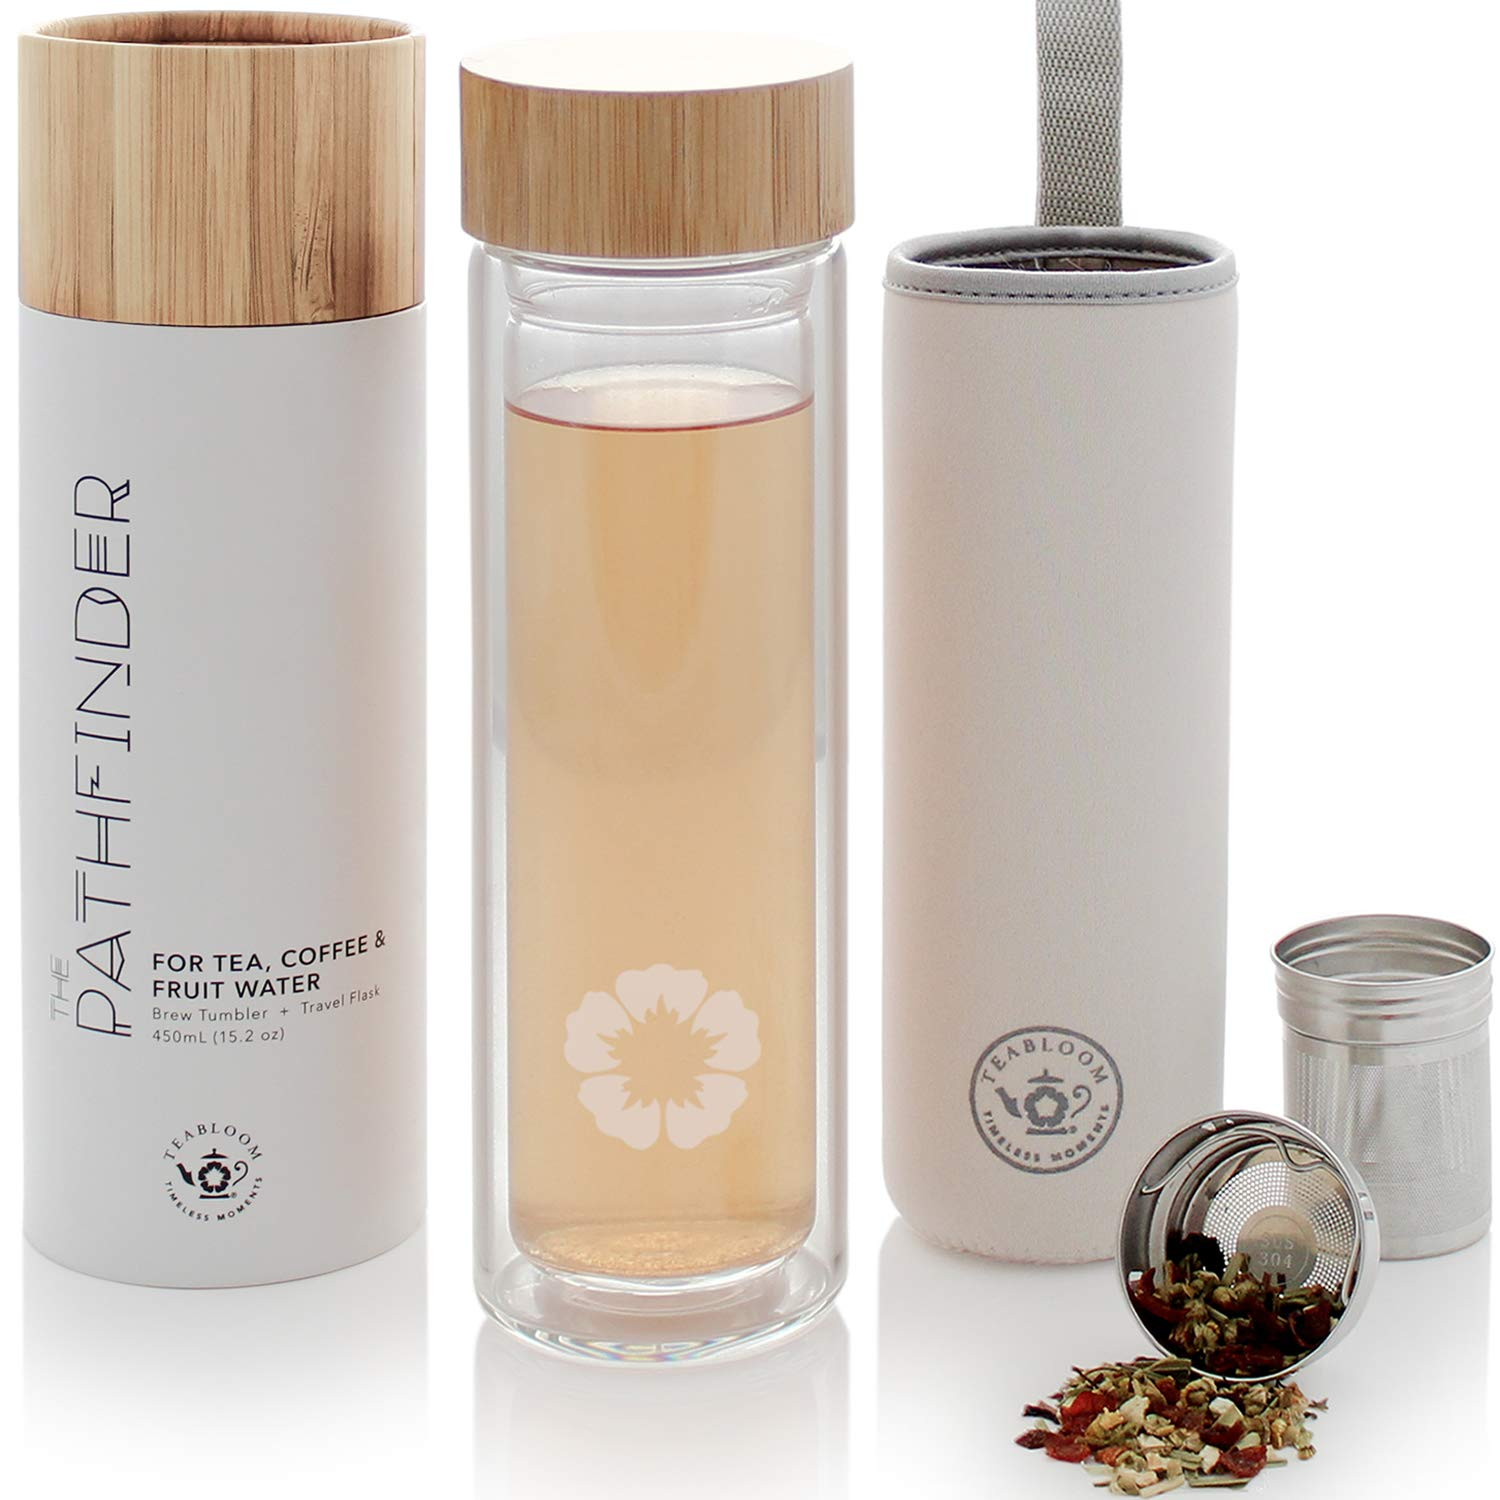 Teabloom All-Beverage Tumbler – 15 oz / 450 ml – Natural Bamboo and Tempered Glass Travel Bottle – Hot and Cold Tea Infuser – Cold-Brew Coffee – Fruit-Infused Water – Tea Tumbler – The Pathfinder